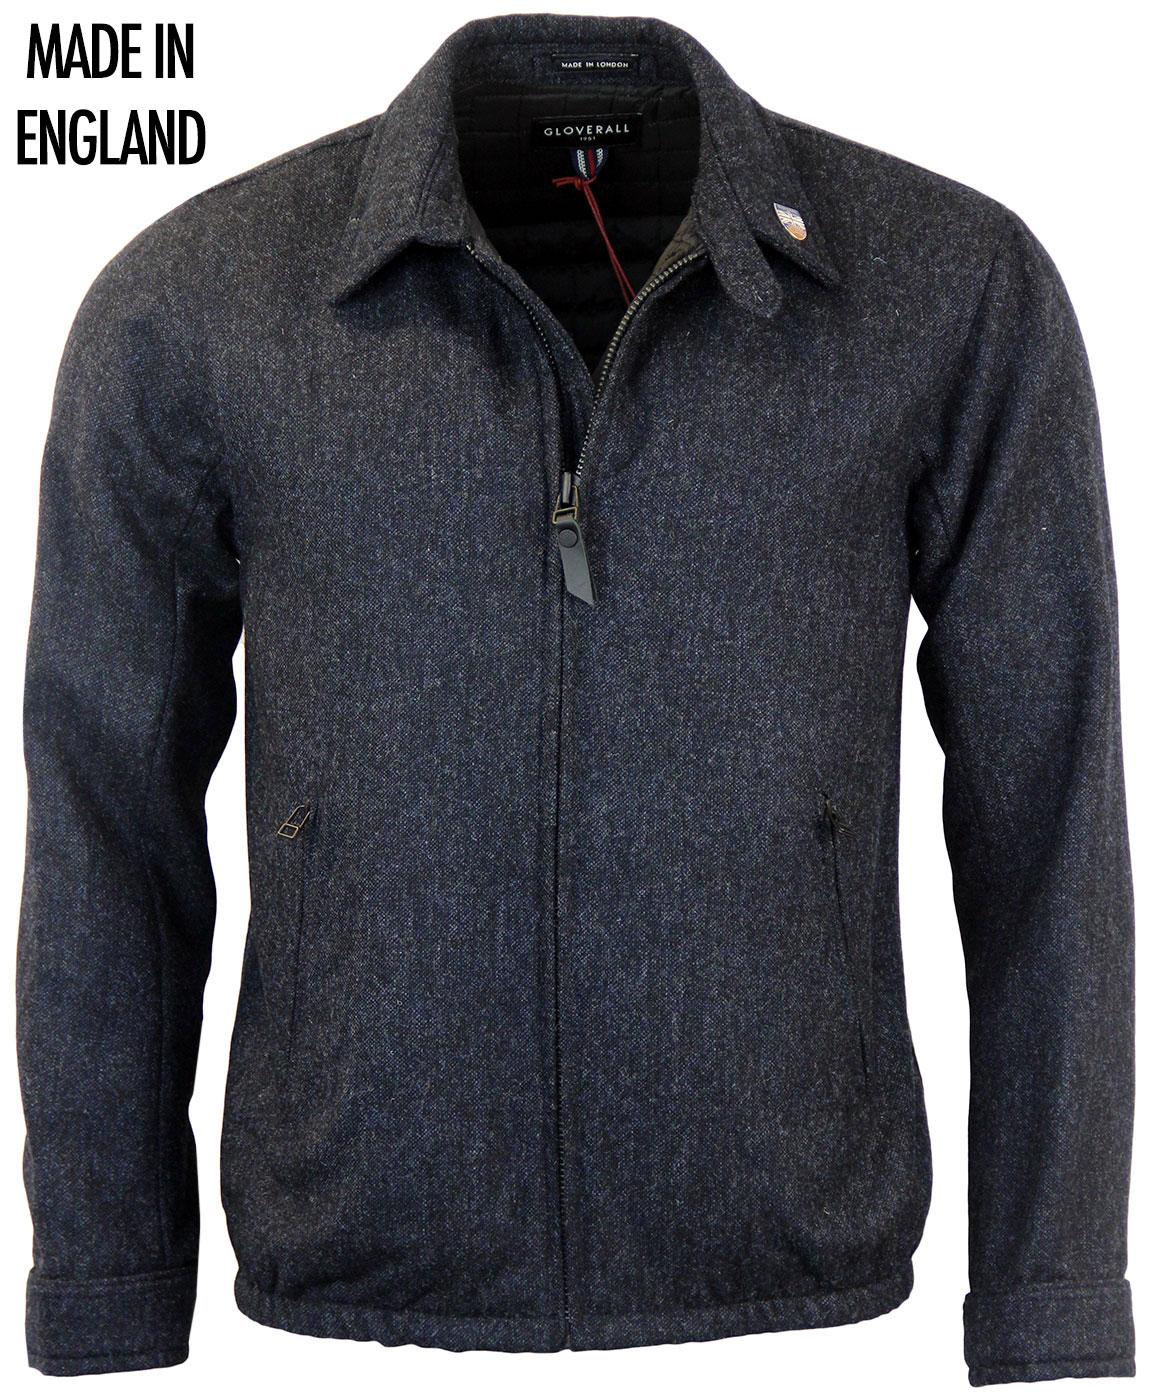 GLOVERALL Made In England Tweed Bomber Jacket